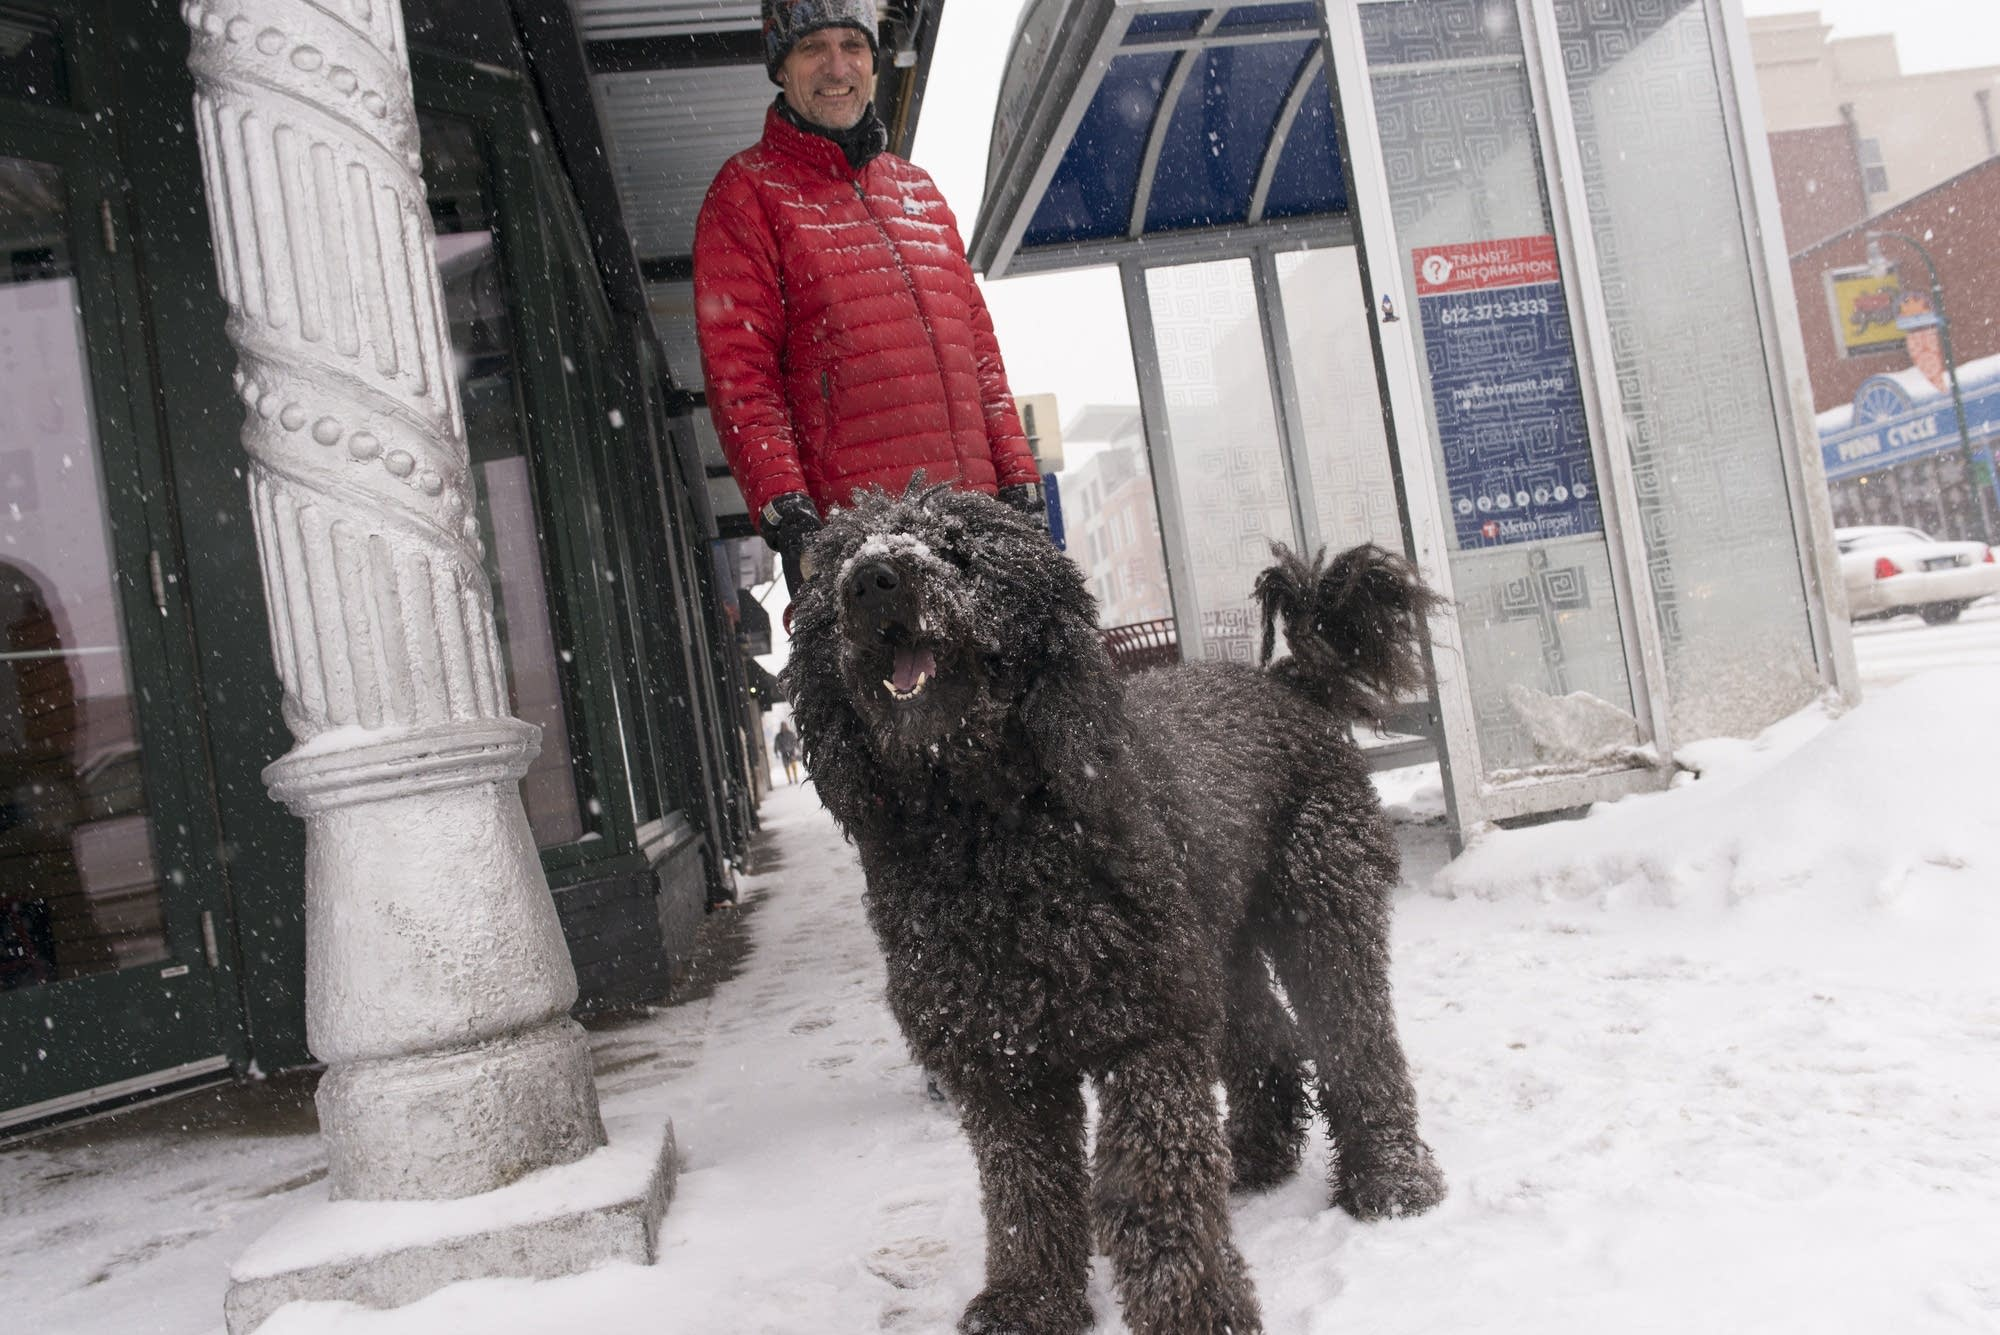 Tony Mommsen and his dog Stella wait to cross the street.